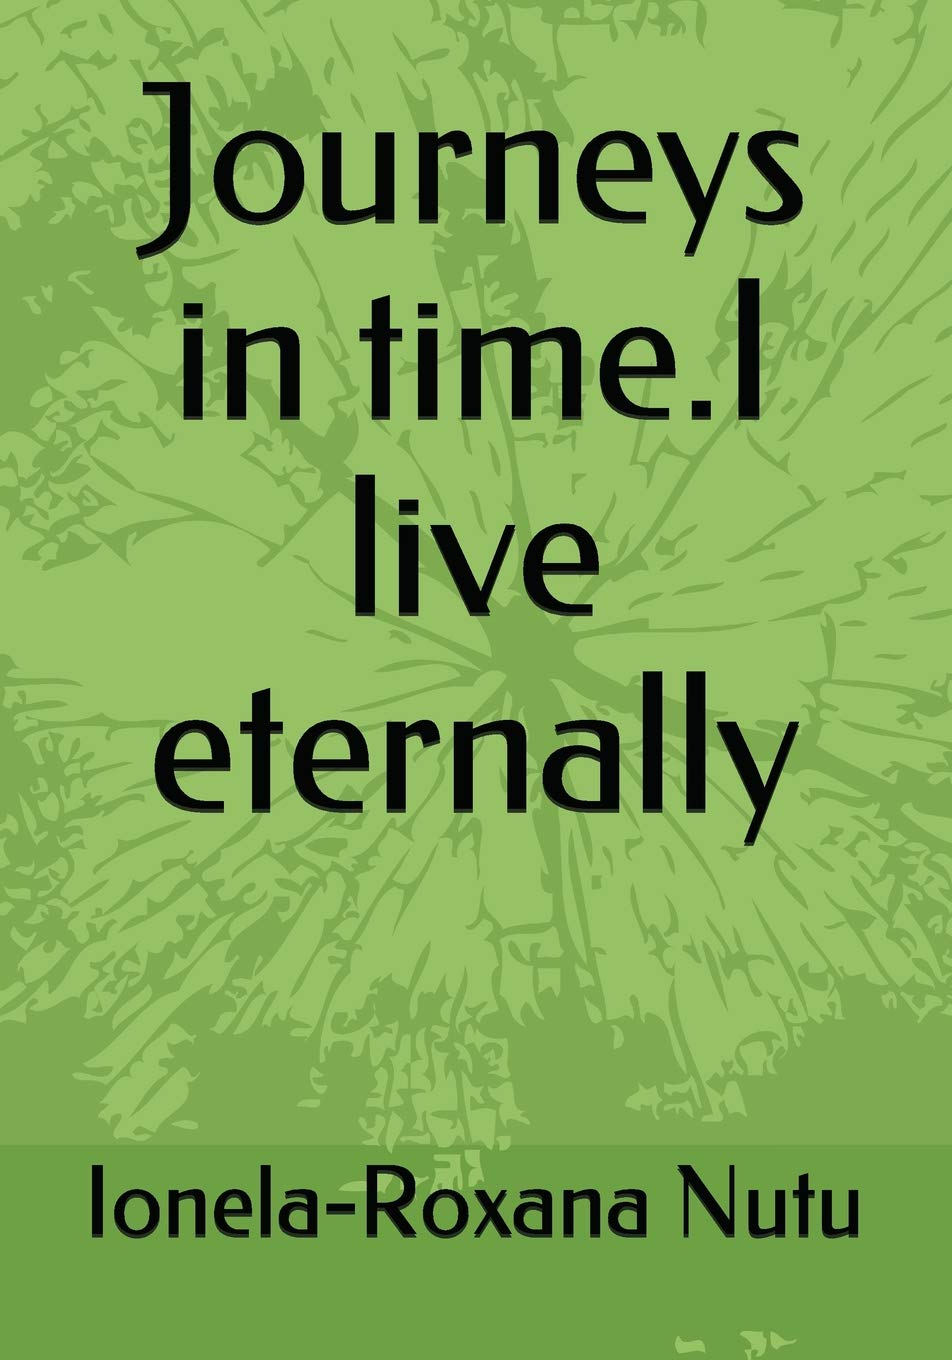 how to live eternally